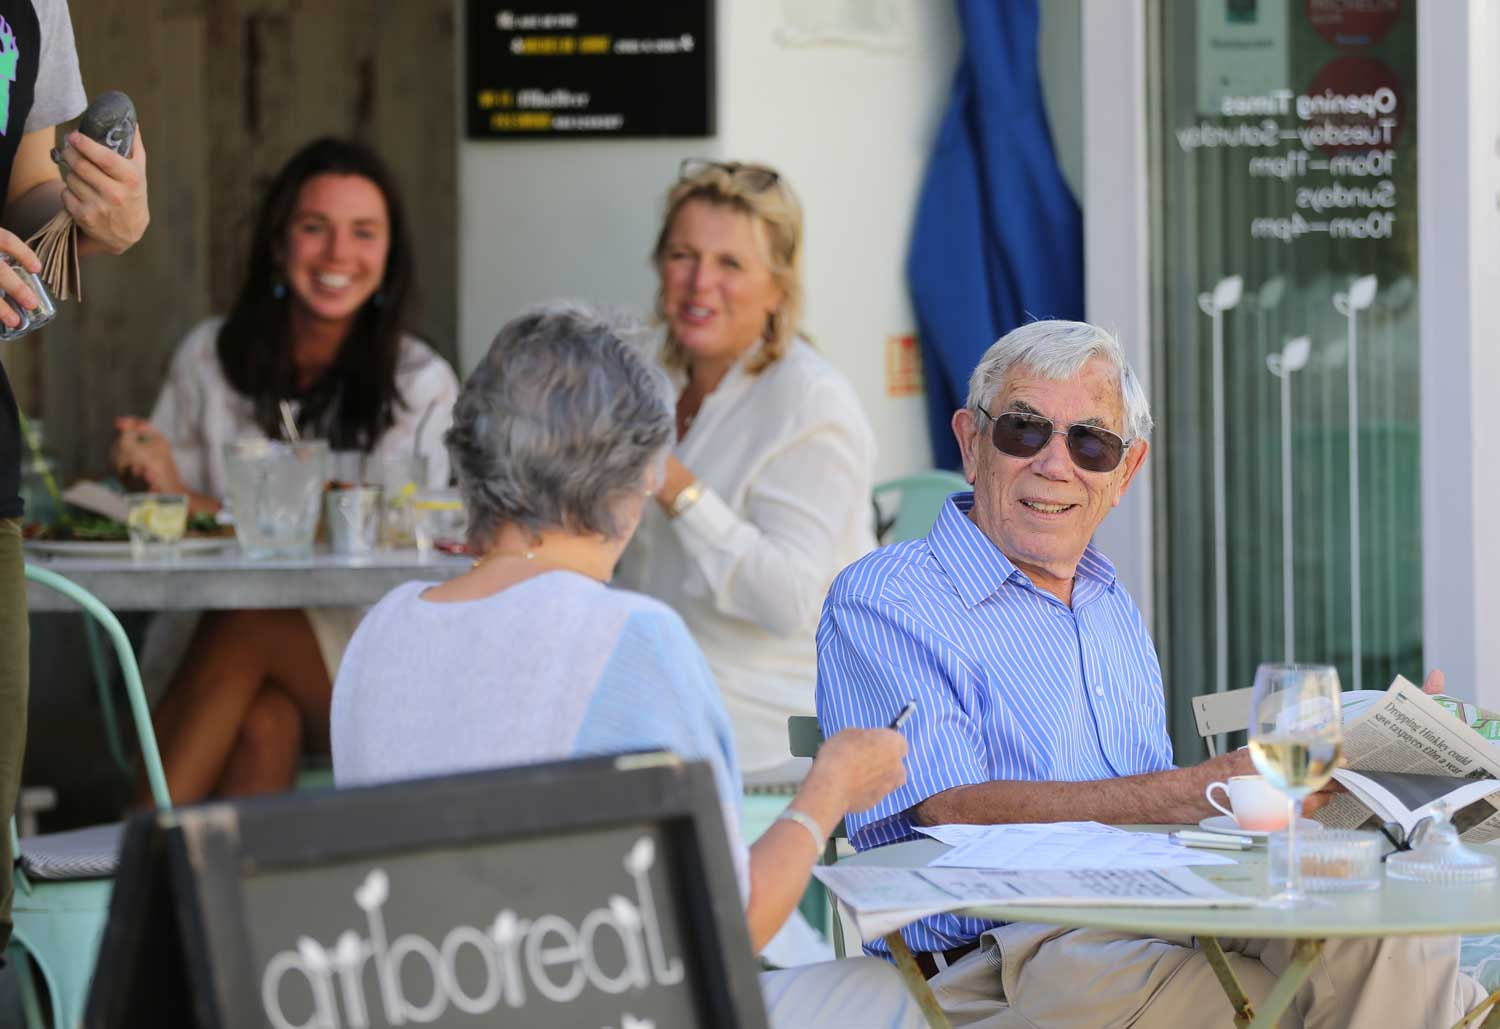 A couple enjoy wine in the sun at a cafe